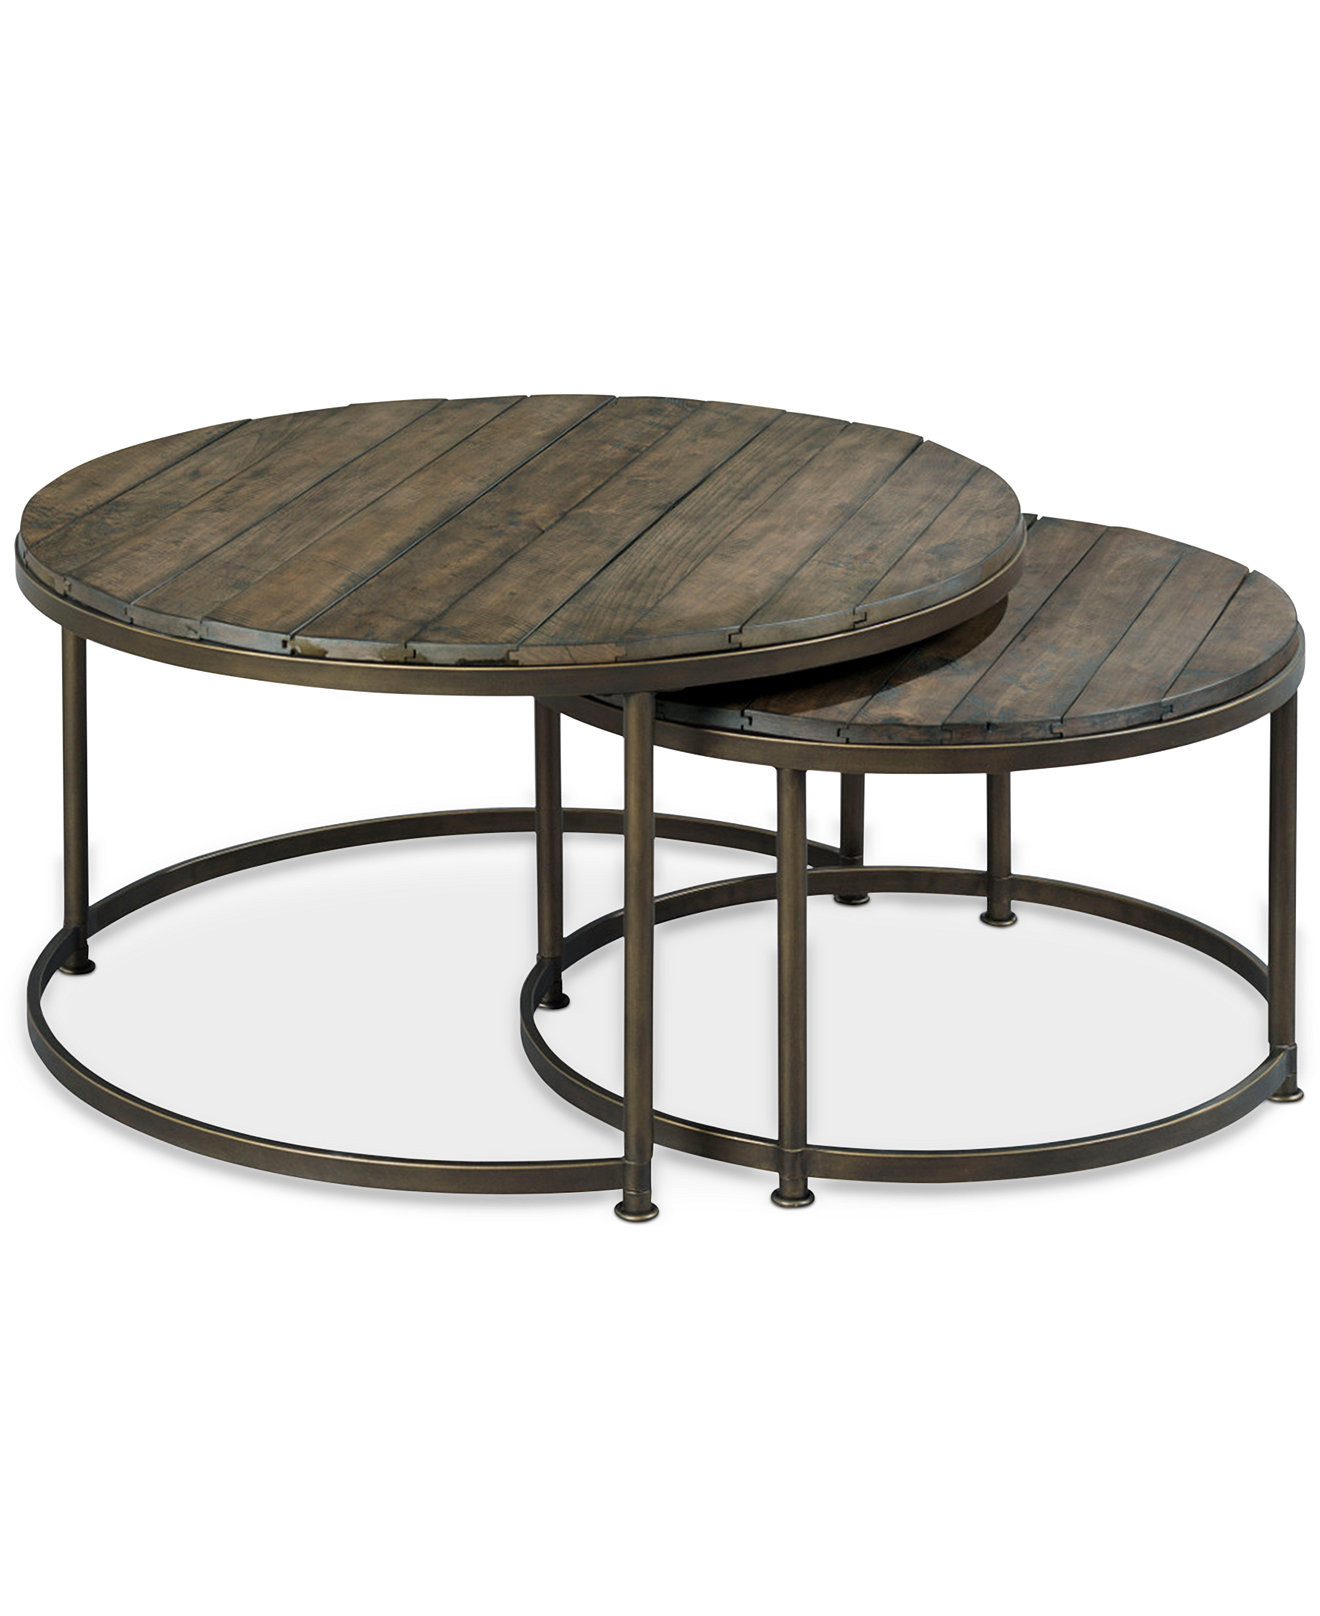 Coffee Tables End Side And Accent Table Link Wood Set Of 2 Round Nesting Coffee Tables Nesting Coffee Table Round (Image 3 of 10)